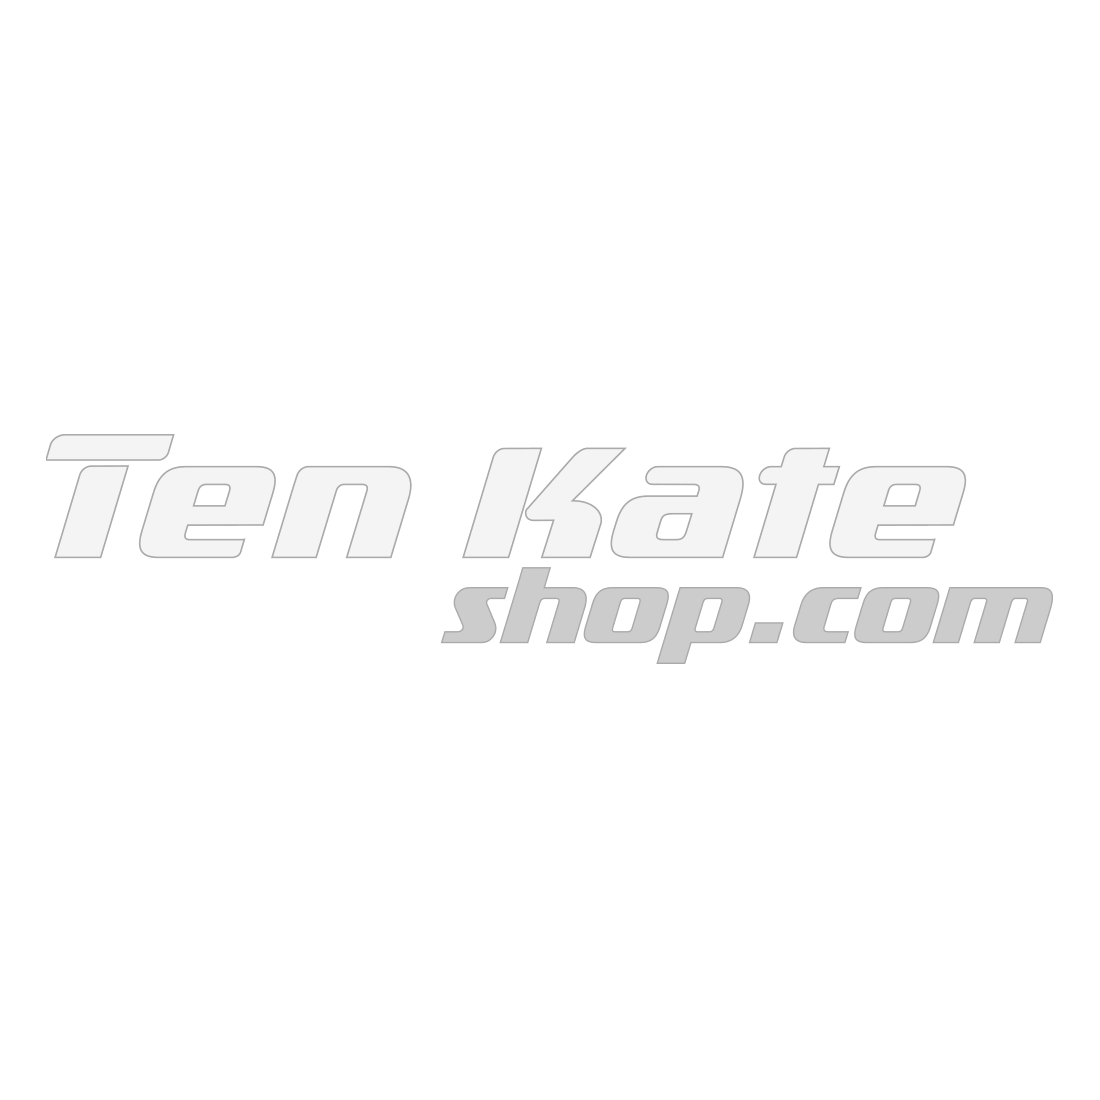 Tenkateshop com | The online shop for your motorcycle gear